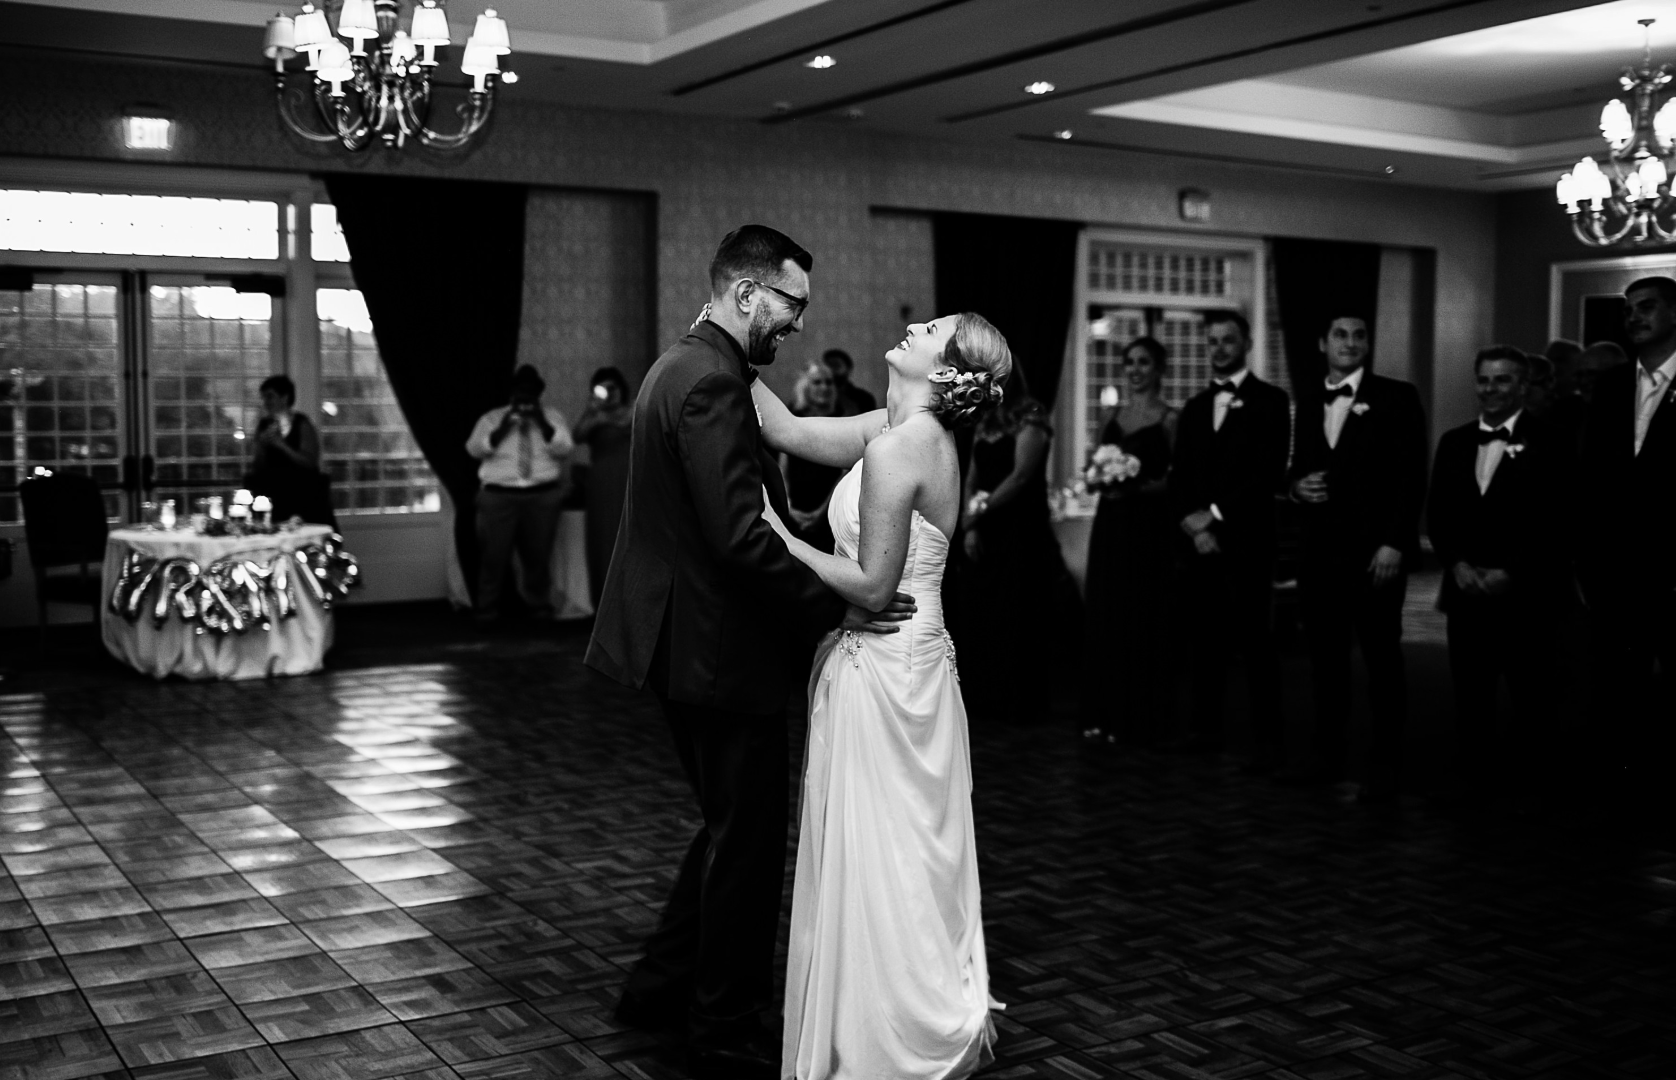 Bride And Groom Share Their First Wedding Dance And Cannot Contain Their Smiles And Emotional Wedding Photography New York Wedding Vintage Wedding Photography